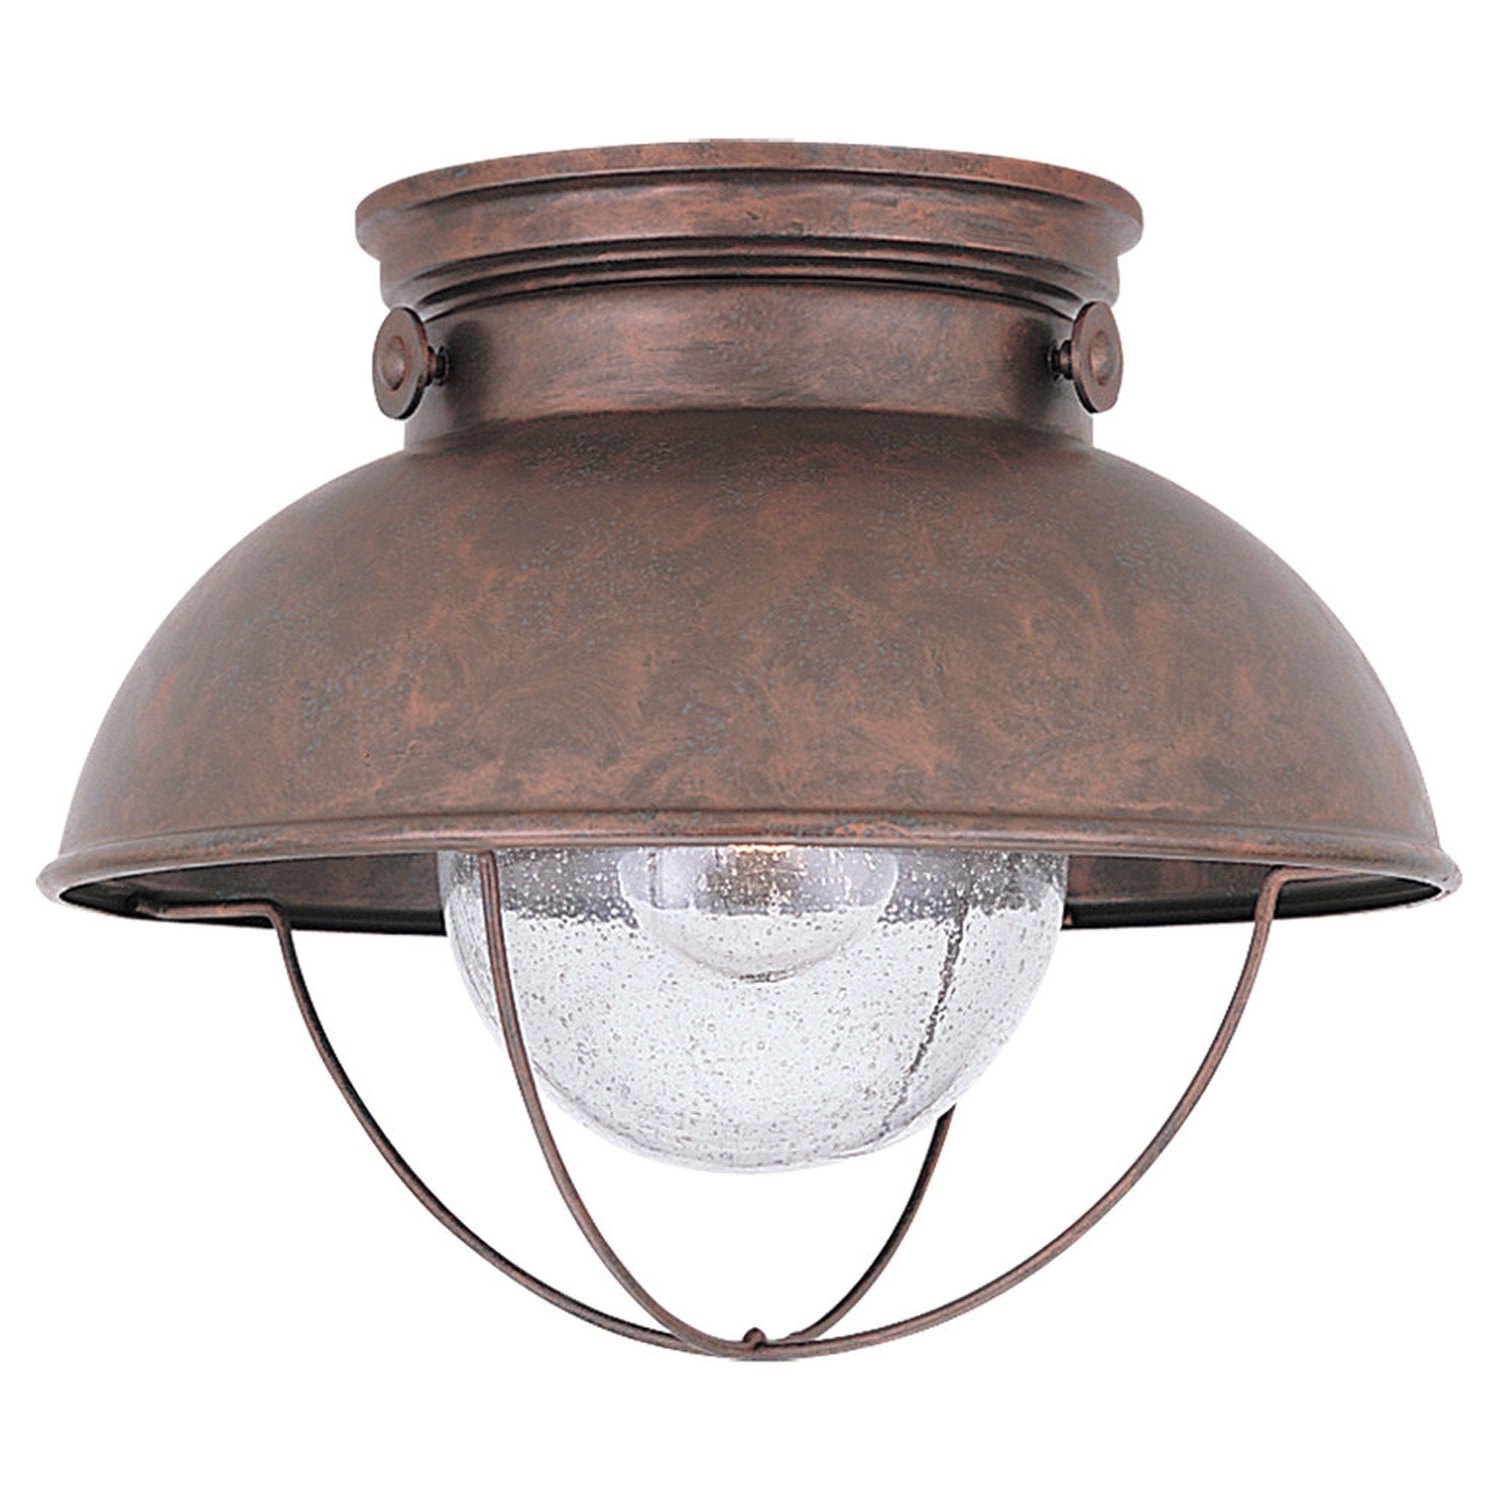 Exterior Light Fixtures In Bronze, Copper Intended For Best And Newest Commercial Outdoor Ceiling Lighting Fixtures (View 6 of 20)